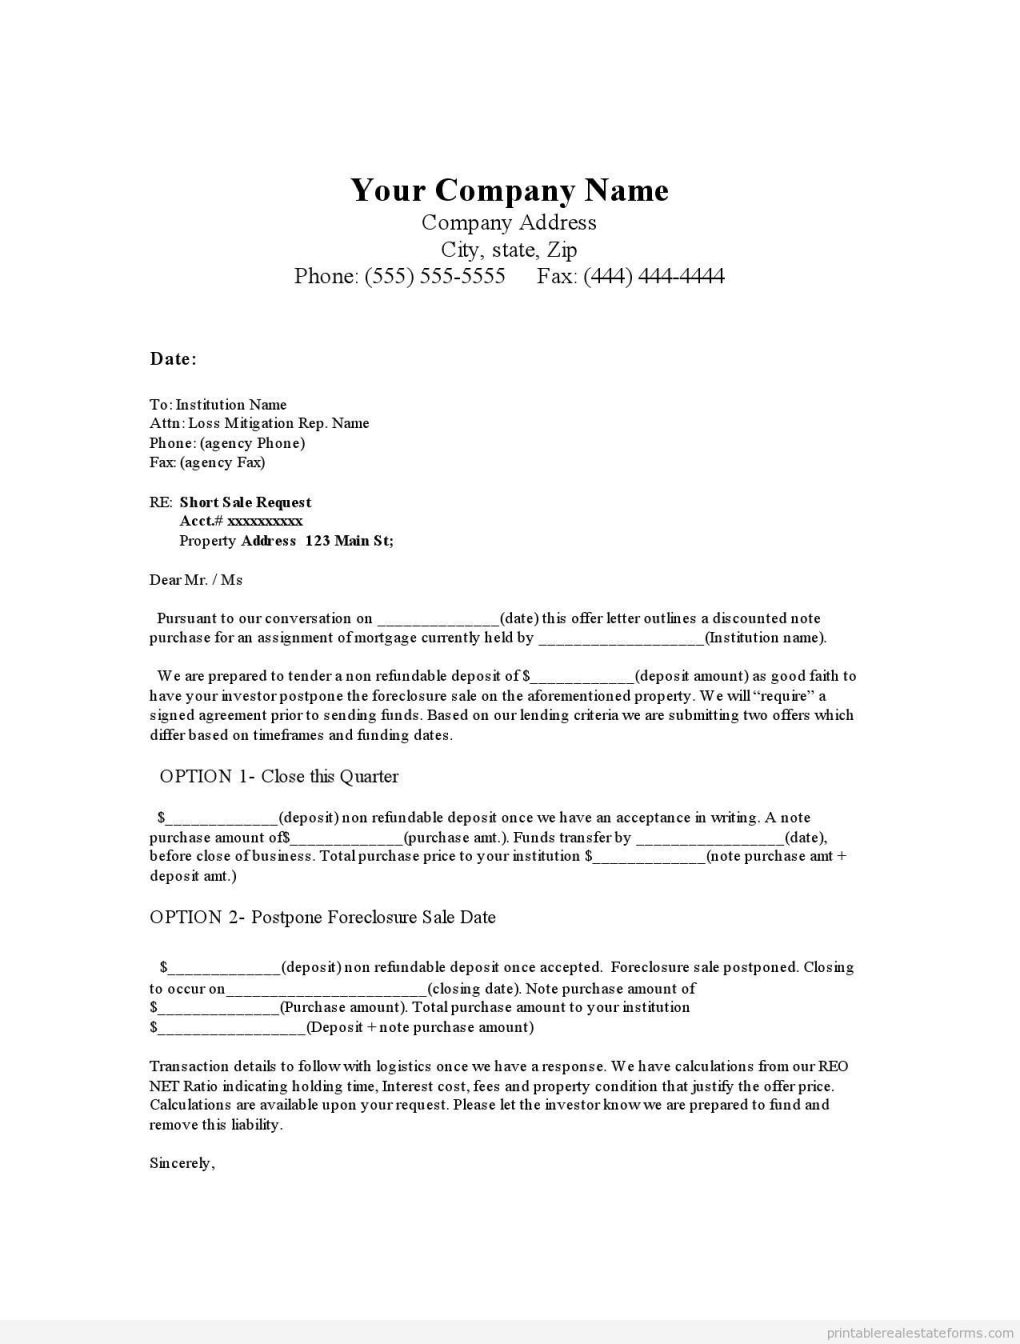 Foreclosure Letter Template - Fresh Fer to Purchase Template Tg47 – Documentaries for Change